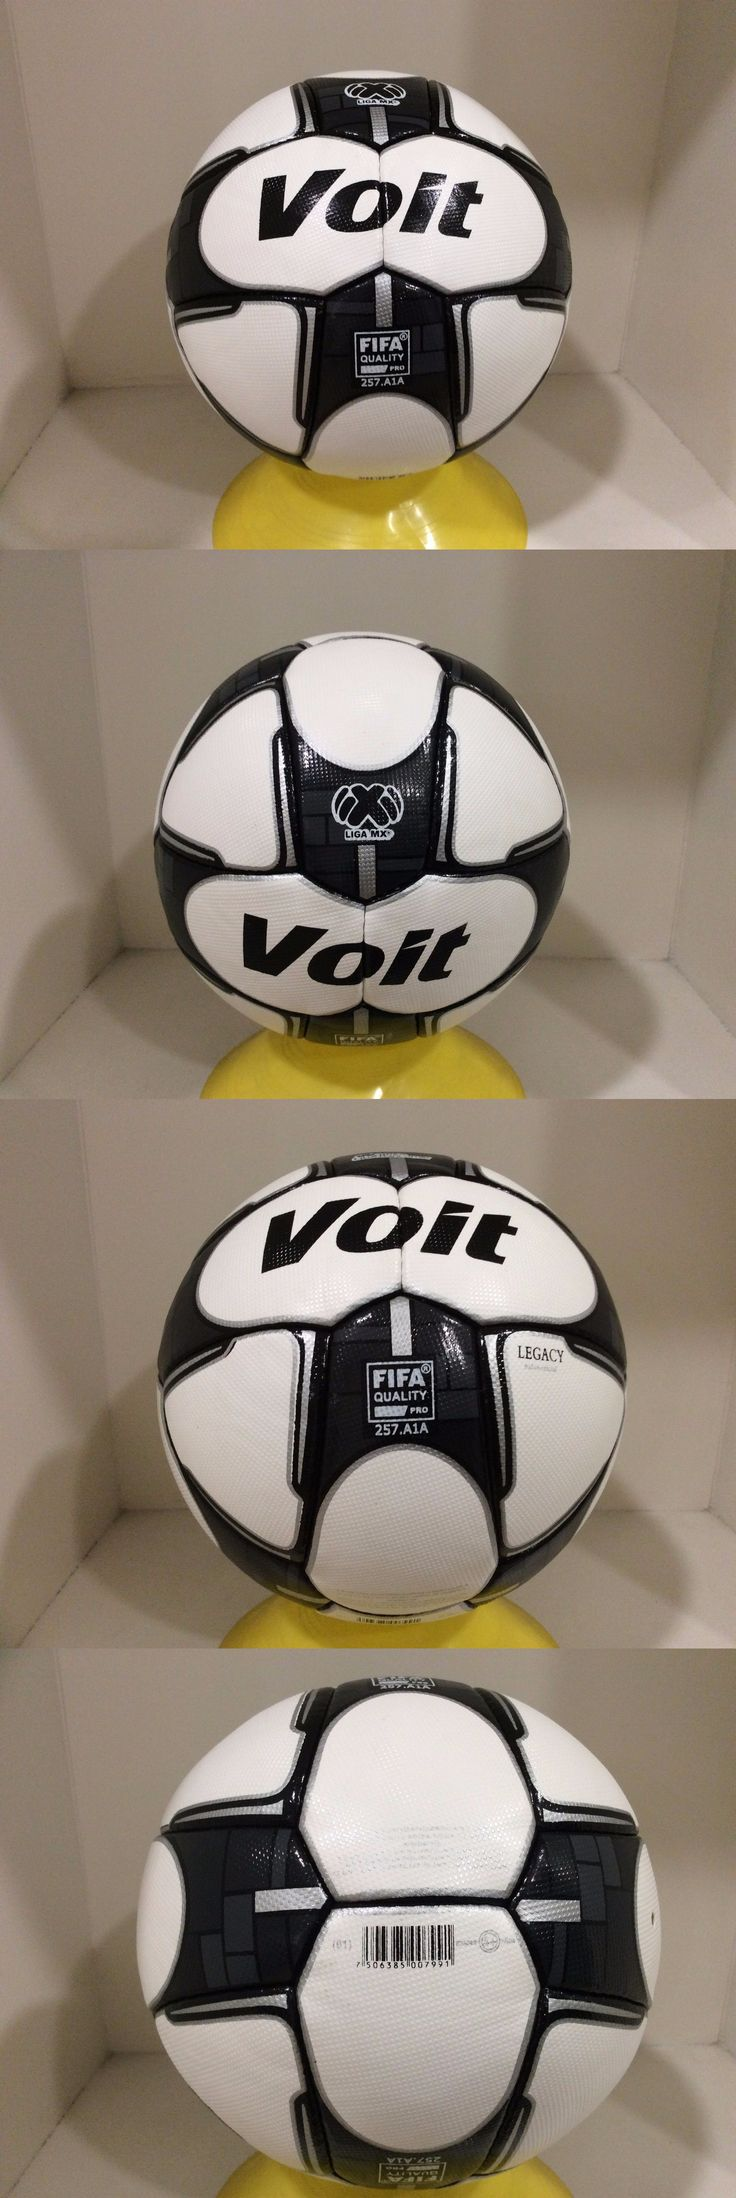 Balls 20863: Voit Soccer Ball Legacy Official Match Ball Size 5 Liga Mx 2016/17 Balon Oficial BUY IT NOW ONLY: $59.99